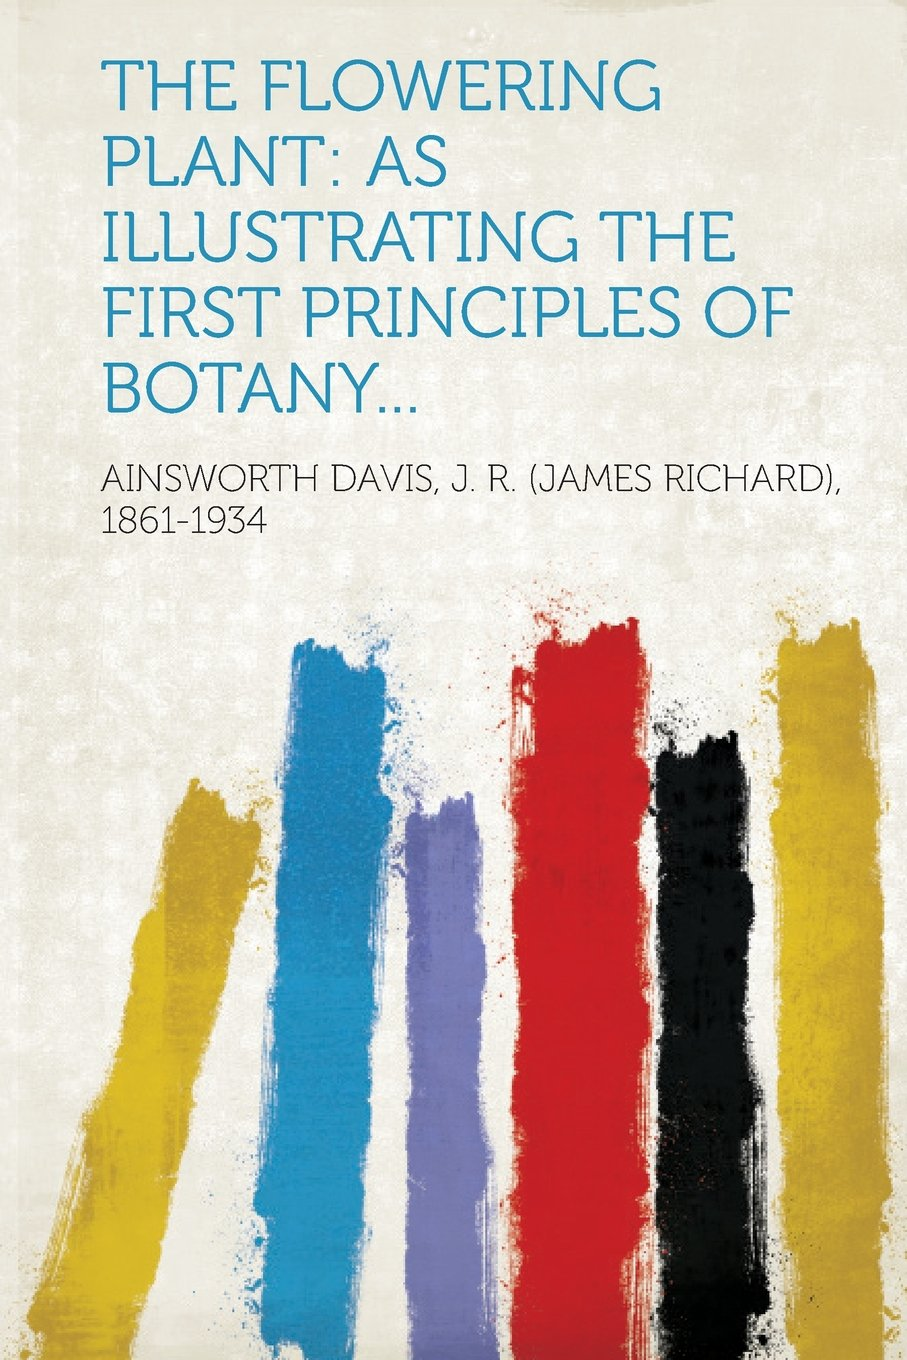 The flowering plant: as illustrating the first principles of botany... ebook